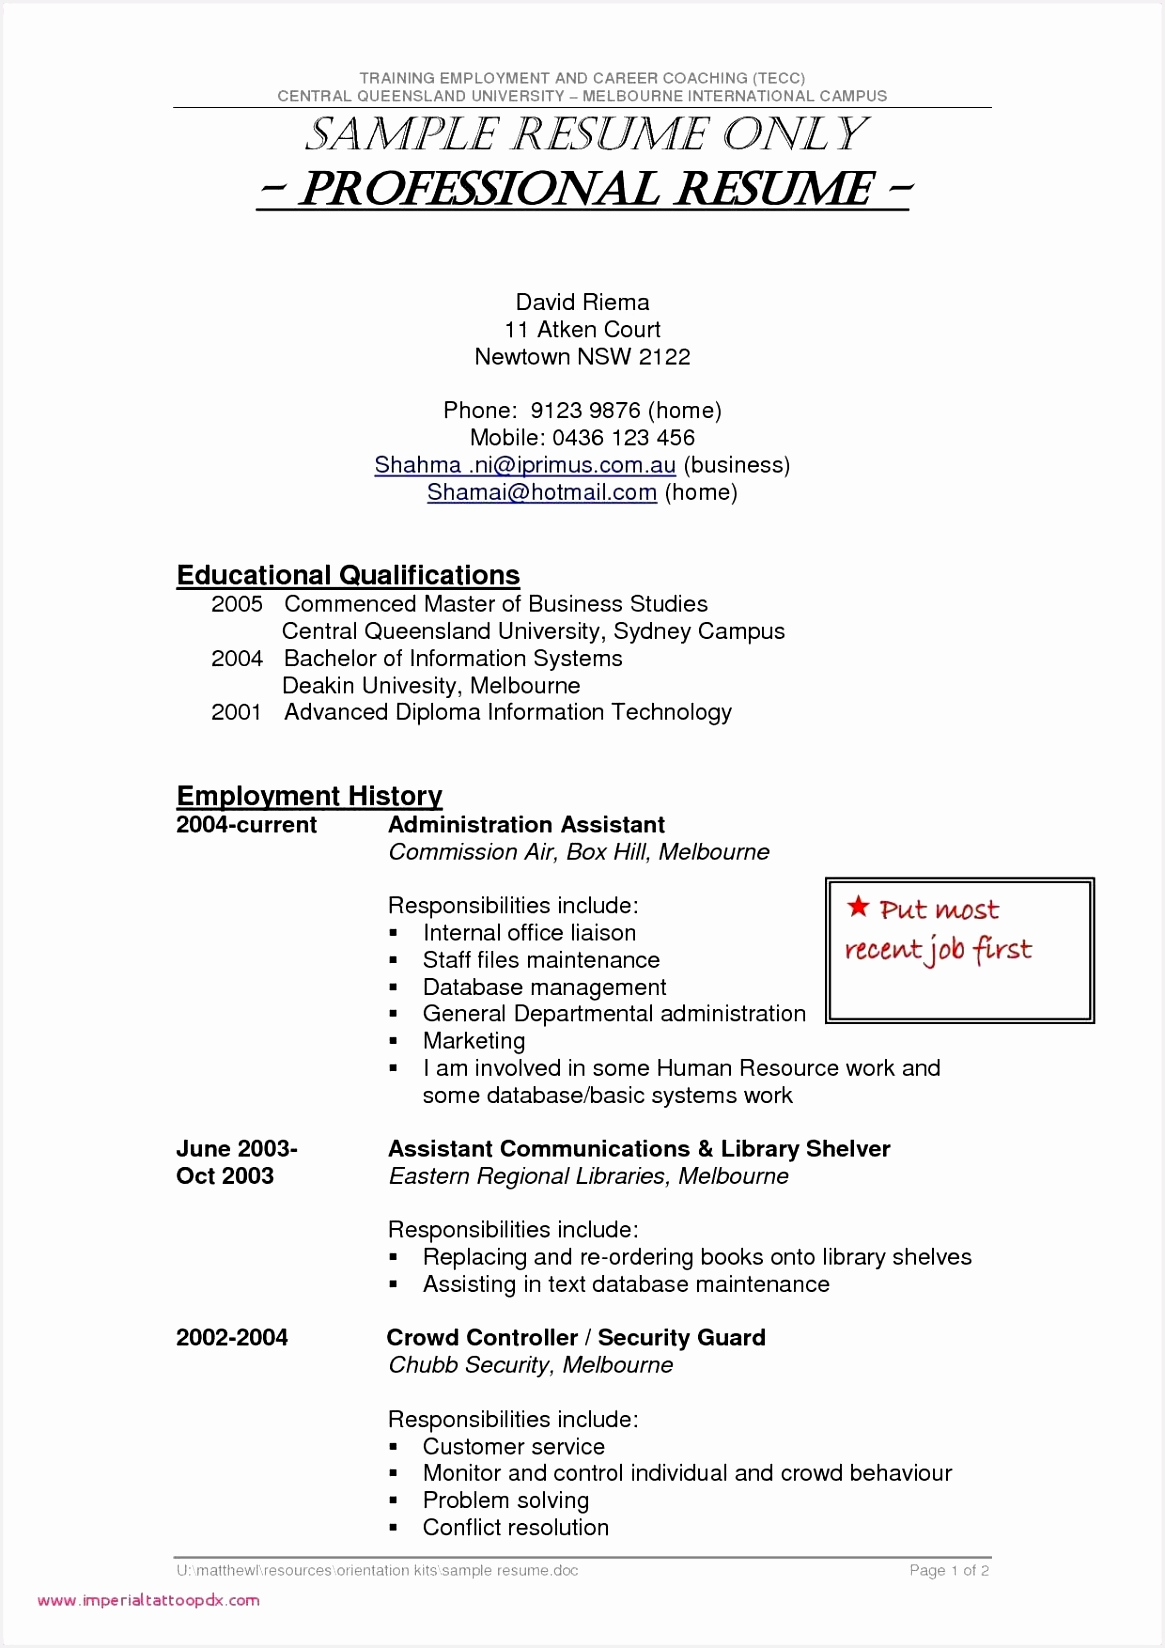 Sample Resume Information Technology Fuirh Luxury Cover Letter for Information Security Job Bsw Resume 0d Property Of 6 Sample Resume Information Technology